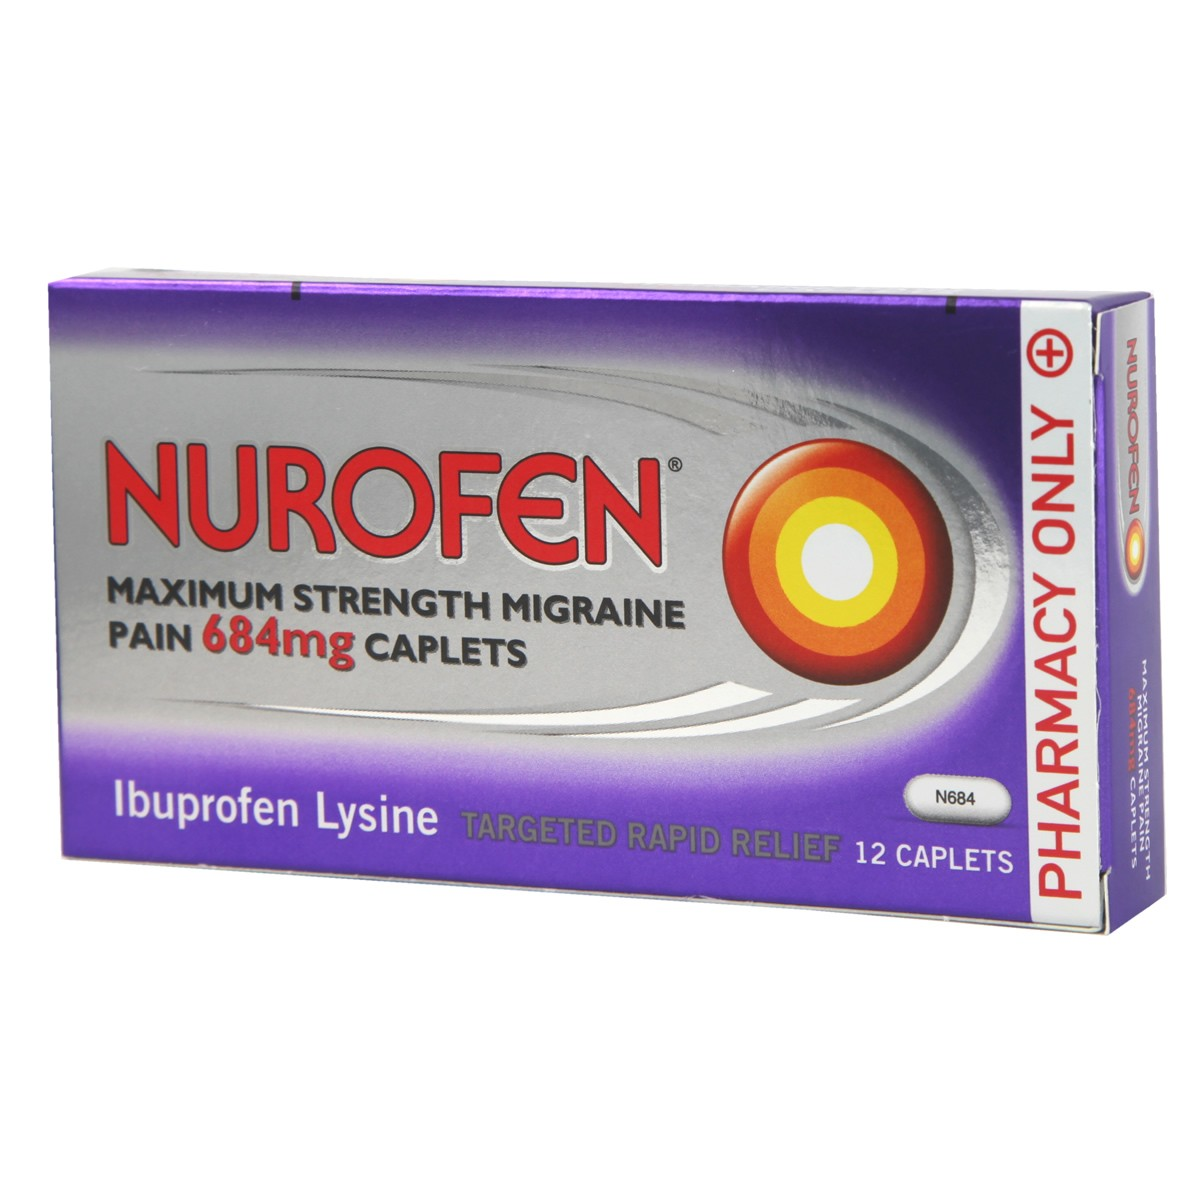 Nurofen Maximum Strength Migraine Pain - 684mg